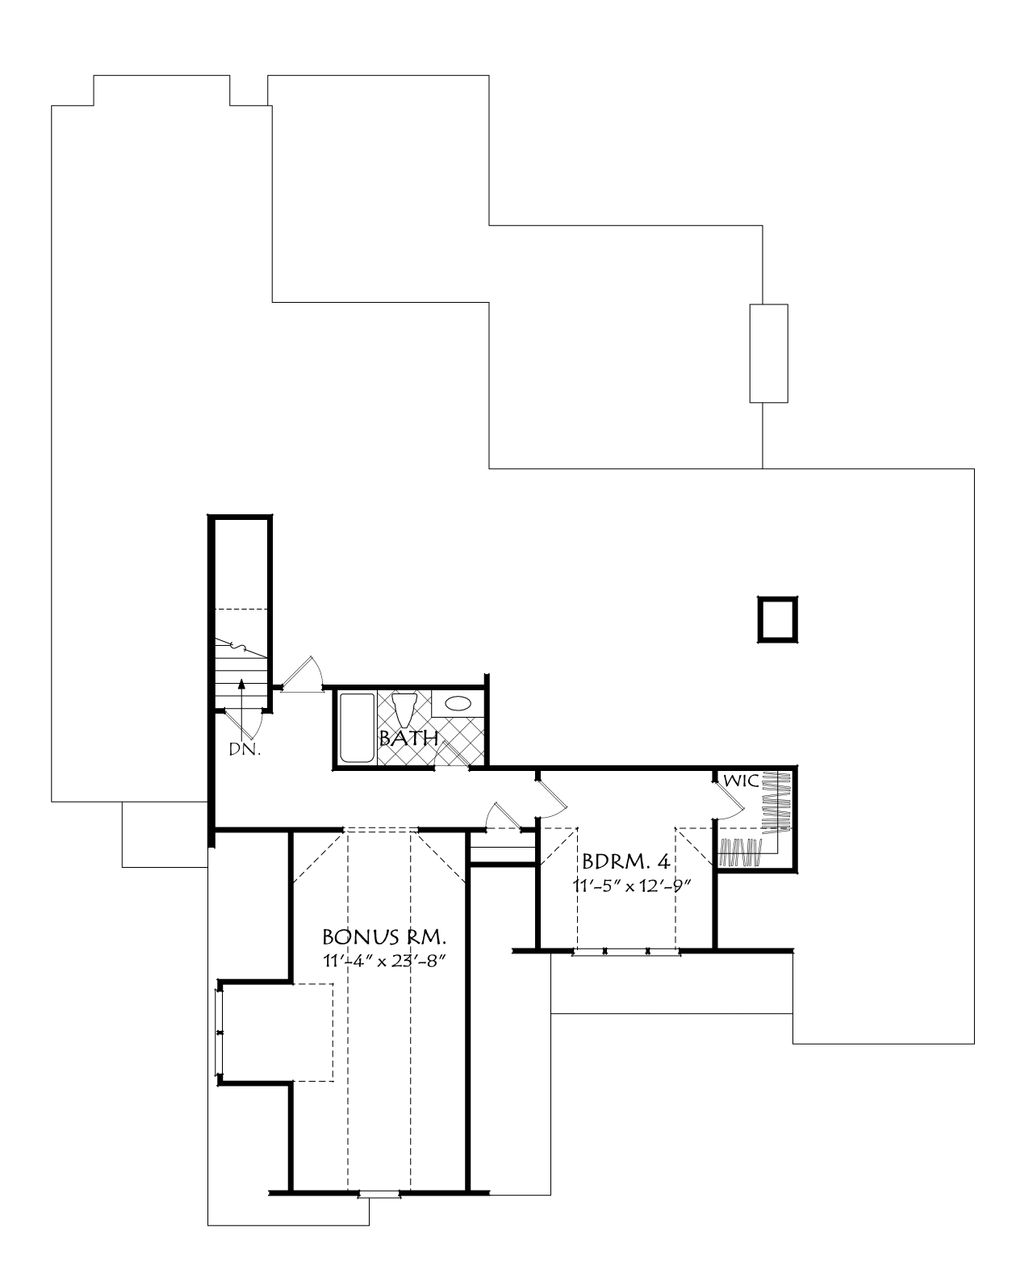 Ranch House Plan With Hip Roof on gazebo building plans for hip roofs, ranch house with gable roof, ranch house plans with hipped roofs, ranch house additions with hip roof, ranch homes with hip roofs, ranch house plans 1955, ranch house addition over garage,